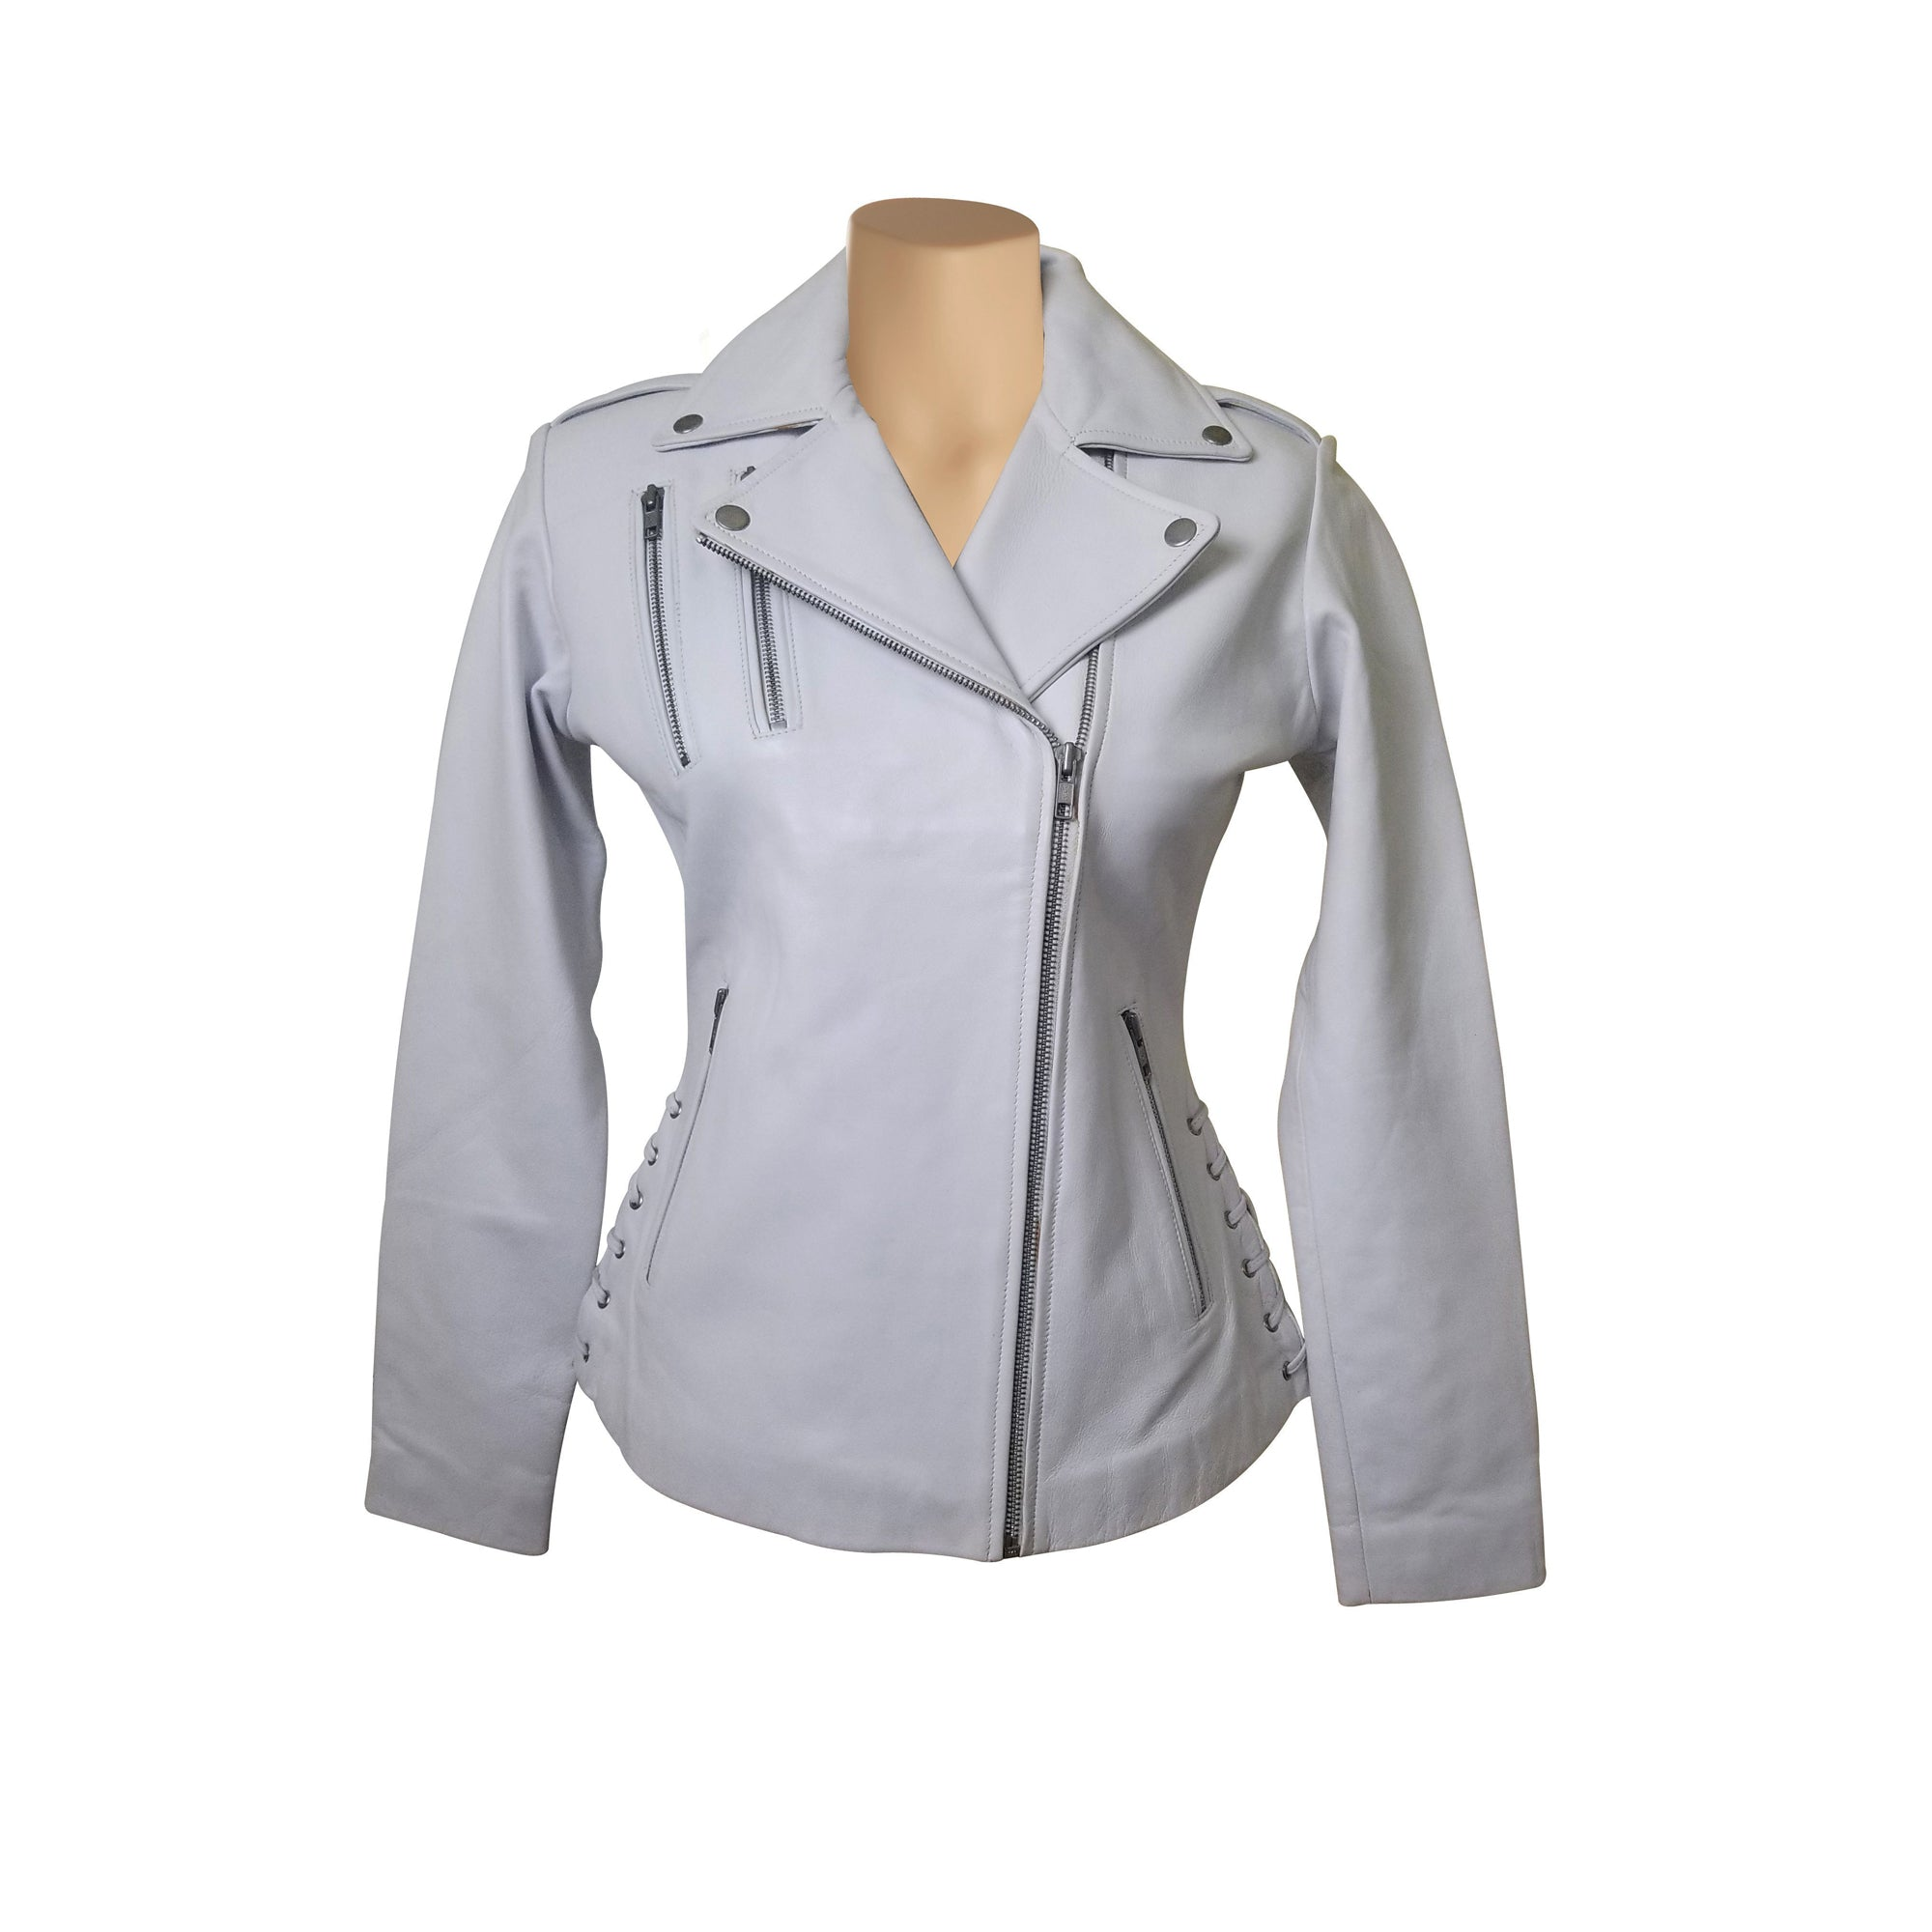 Callie's white biker style leather jacket